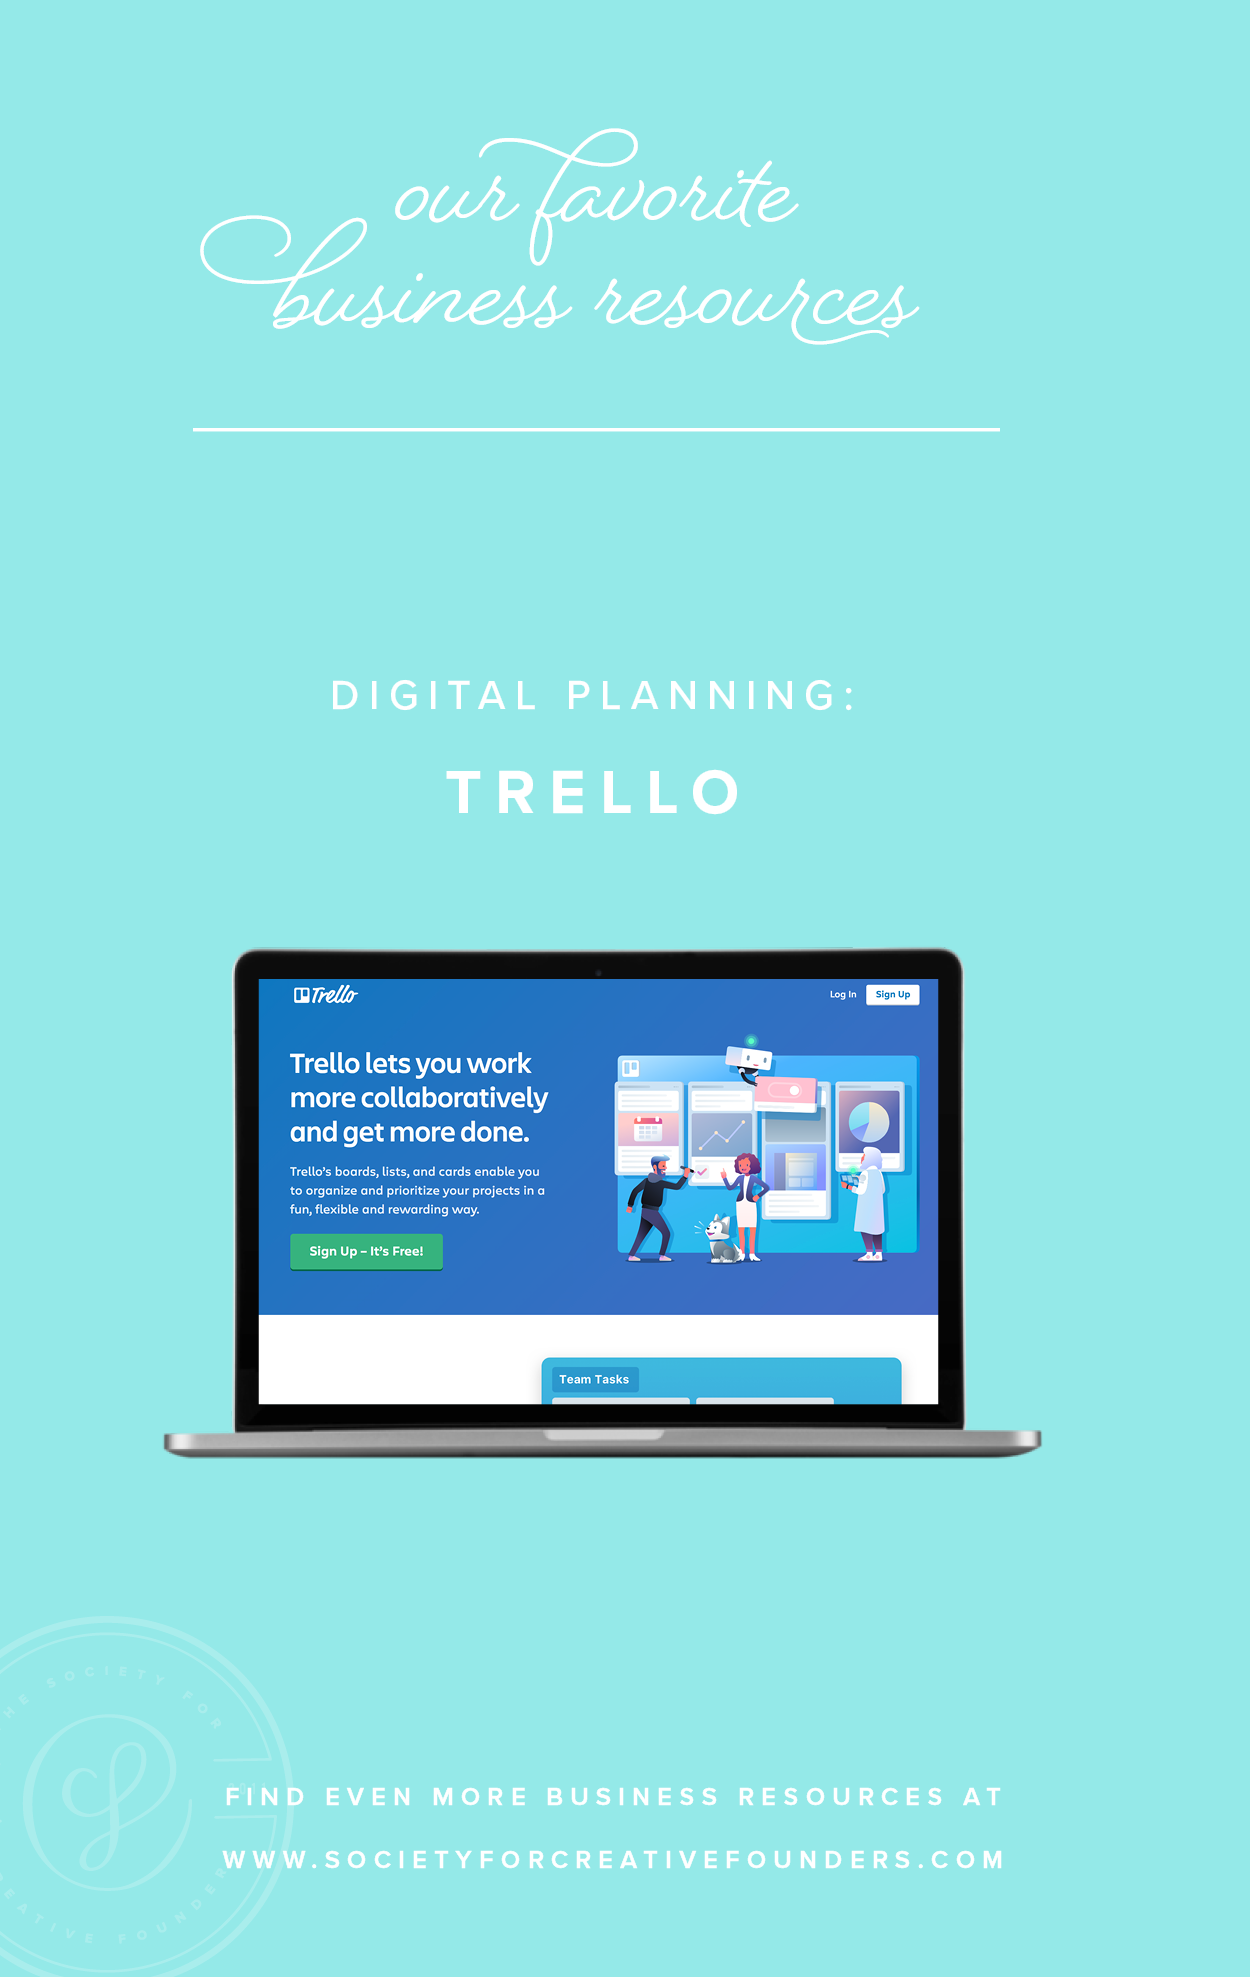 Digital Planning with Trello - Favorite Business Resources from Society for Creative Founders